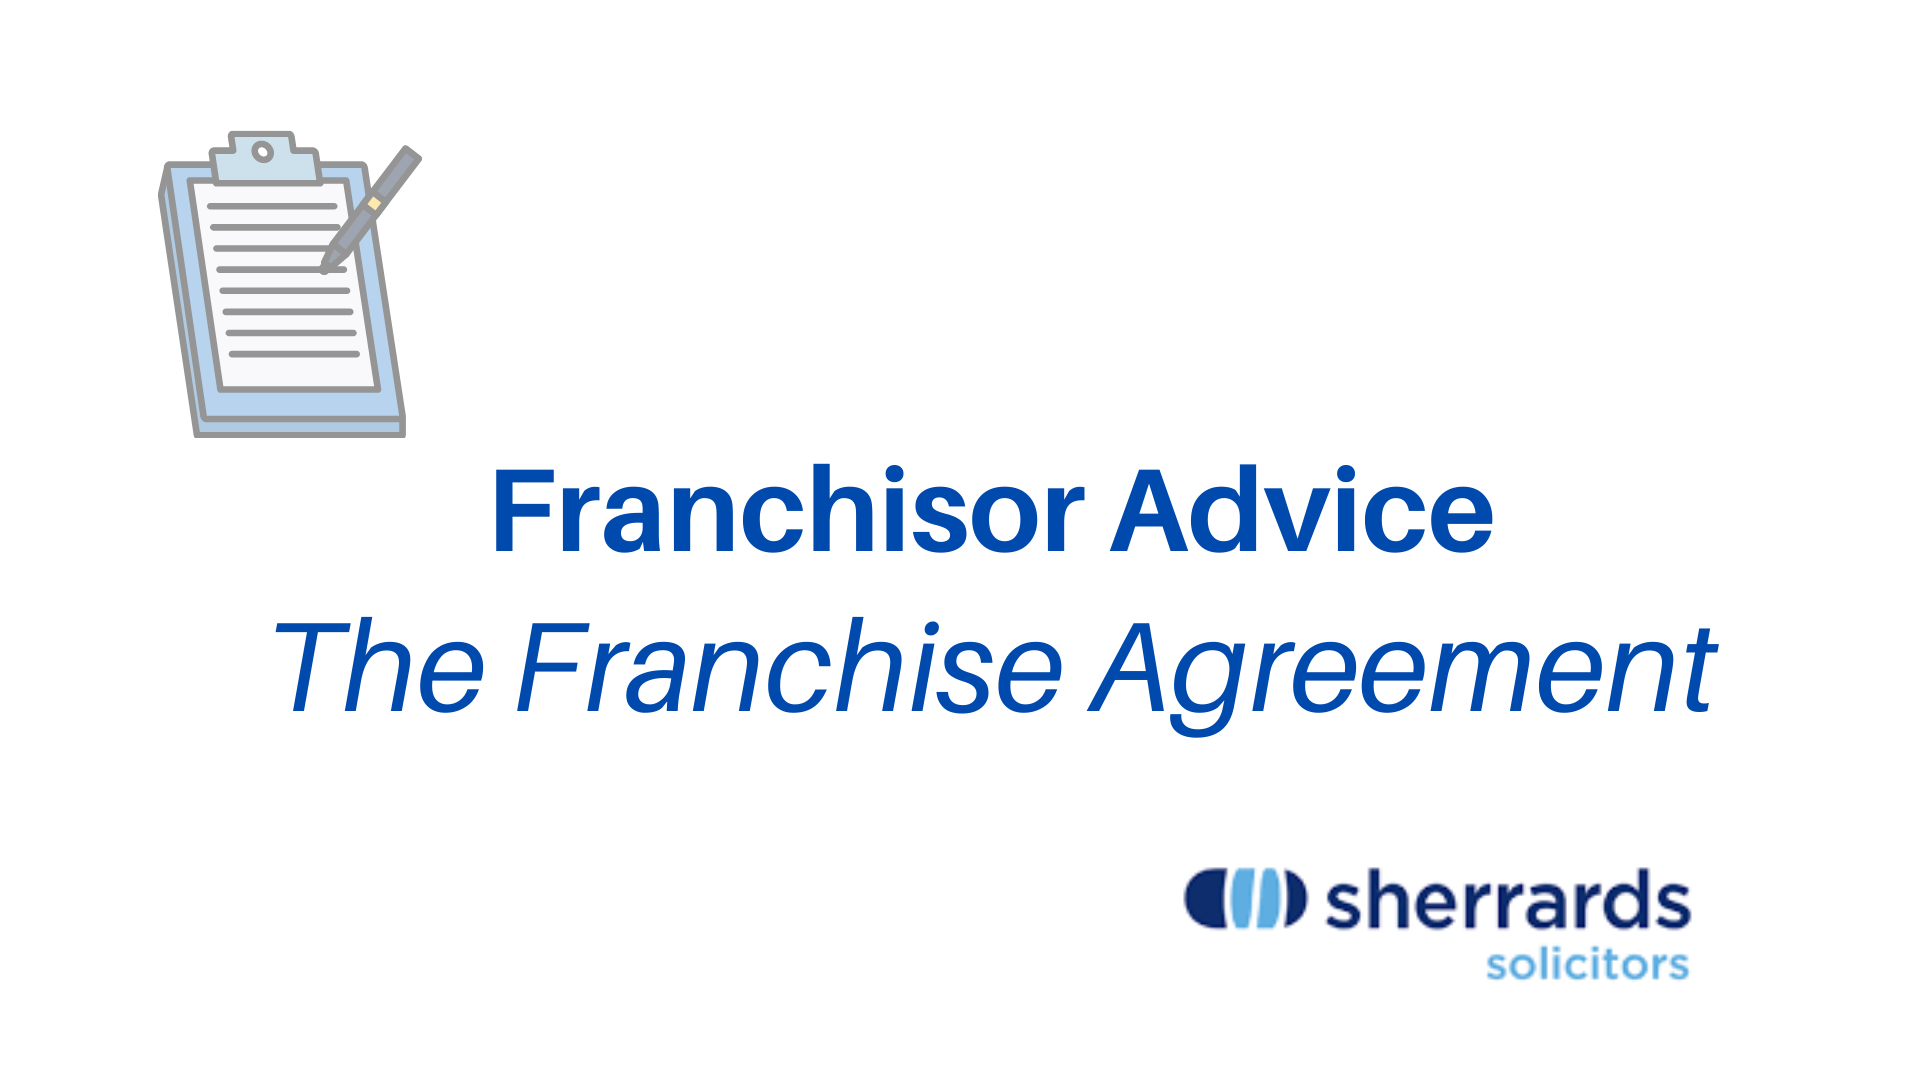 What every franchisor should know about the franchise agreement